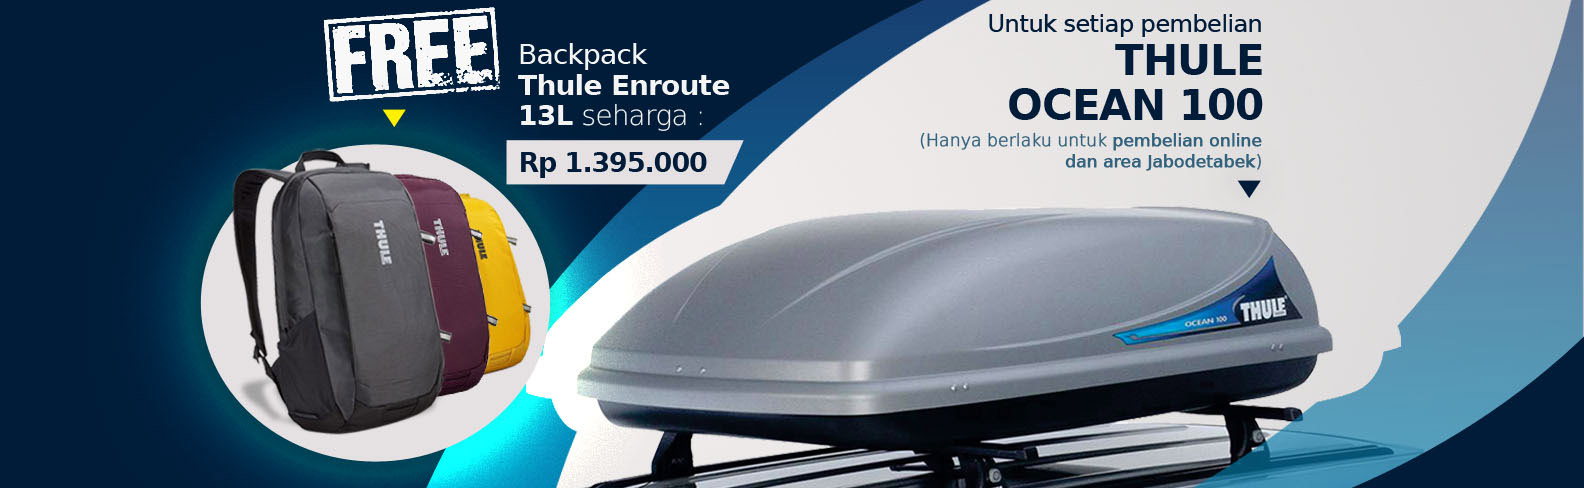 Buy Thule Ocean 100 Get FREE Enroute 13L Backpack